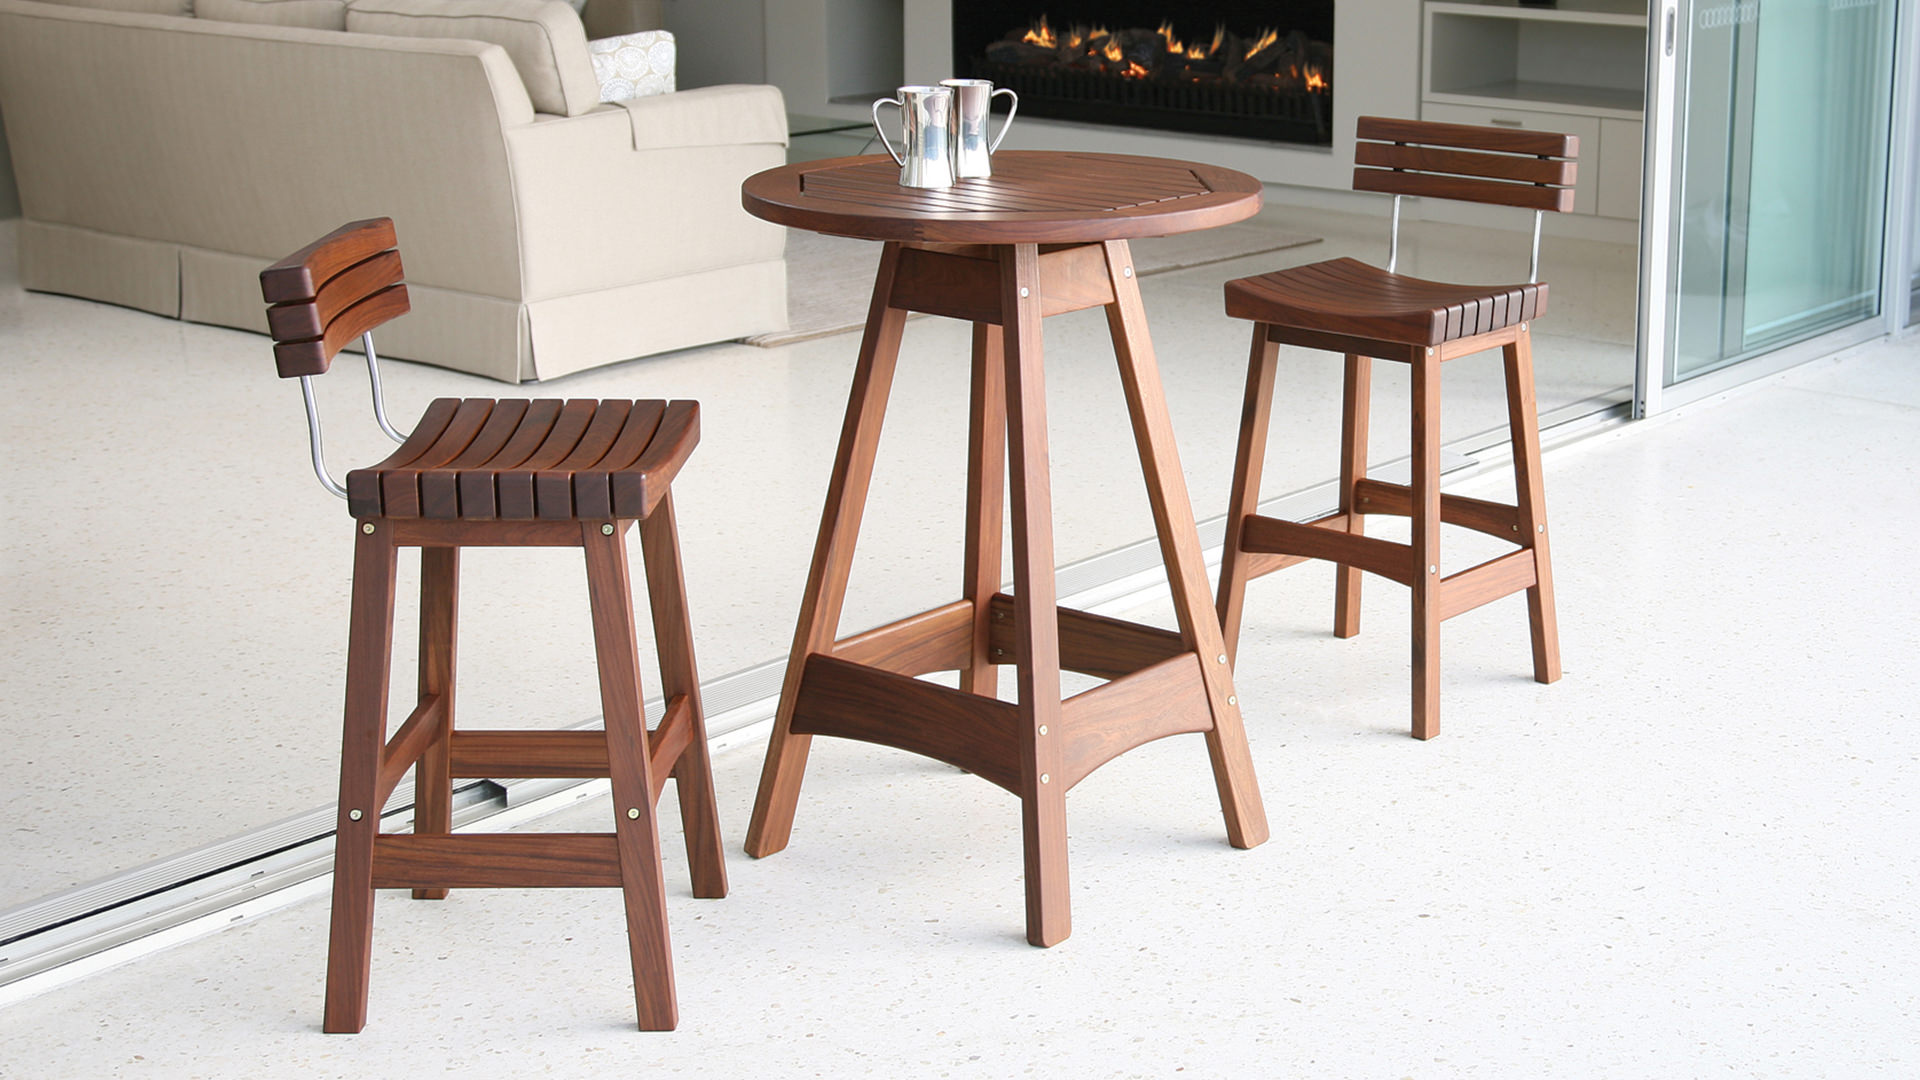 Ipe Wood Outdoor Bar Stool With Back Country Cottage Furniture